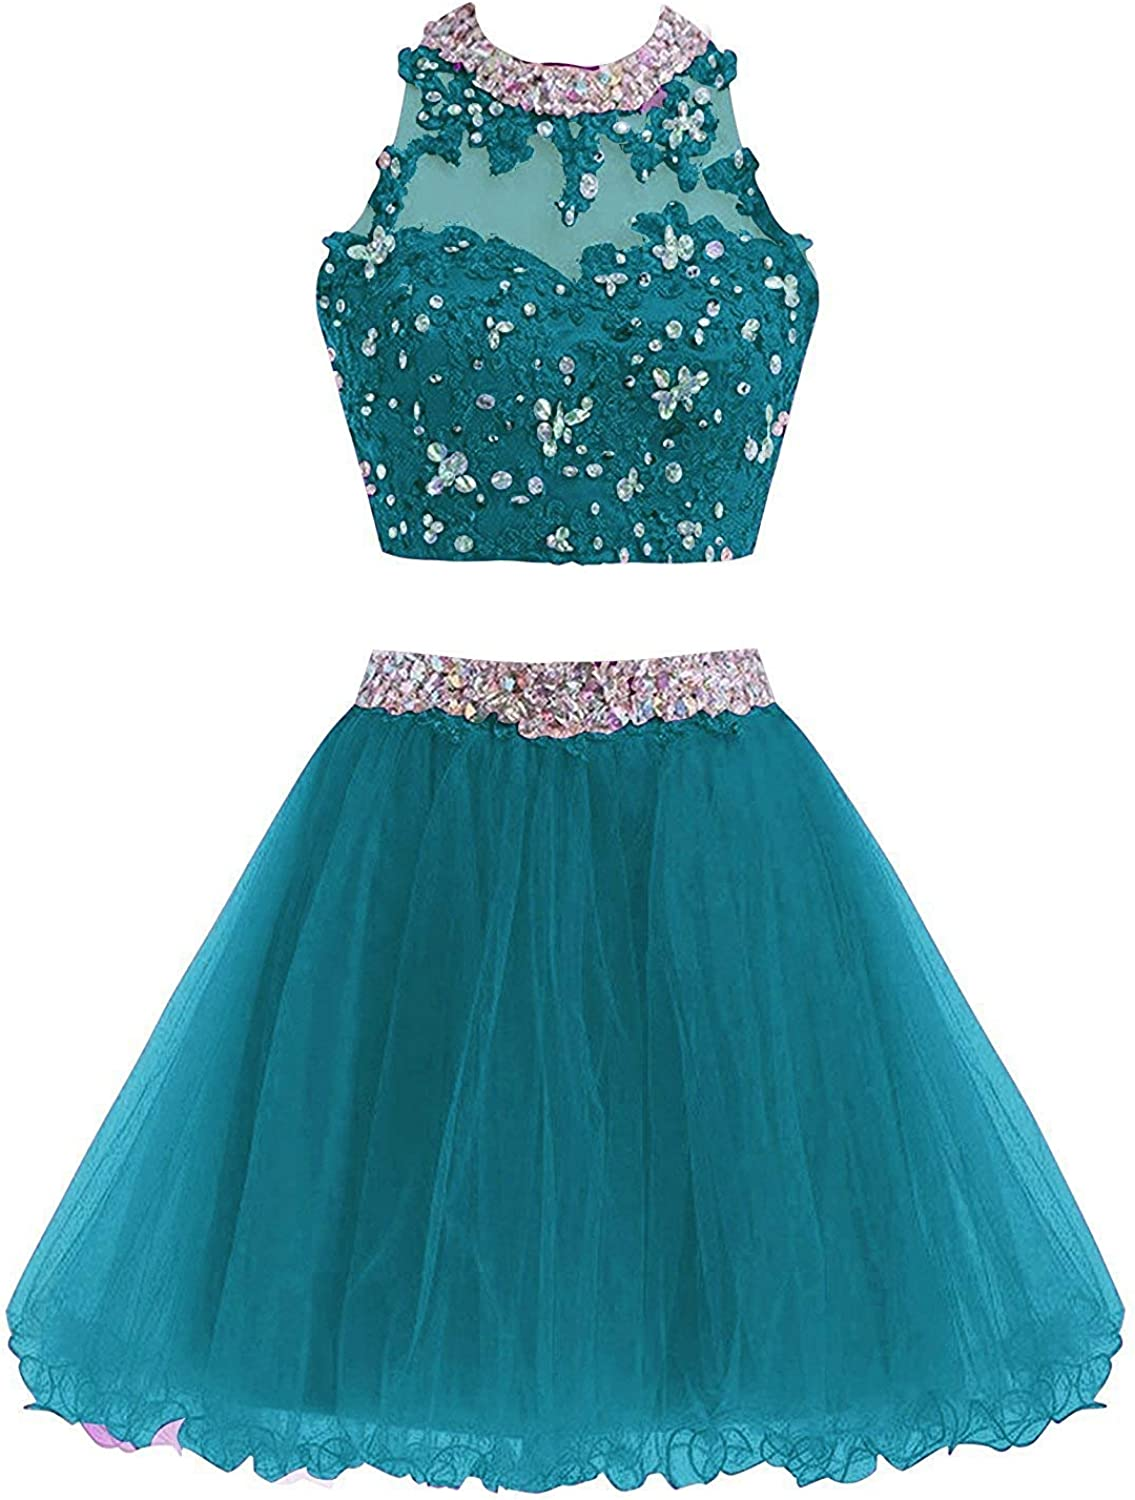 Cdress Two Piece Lace Beads Bodice Short Junior Homecoming Dresses Applique Prom